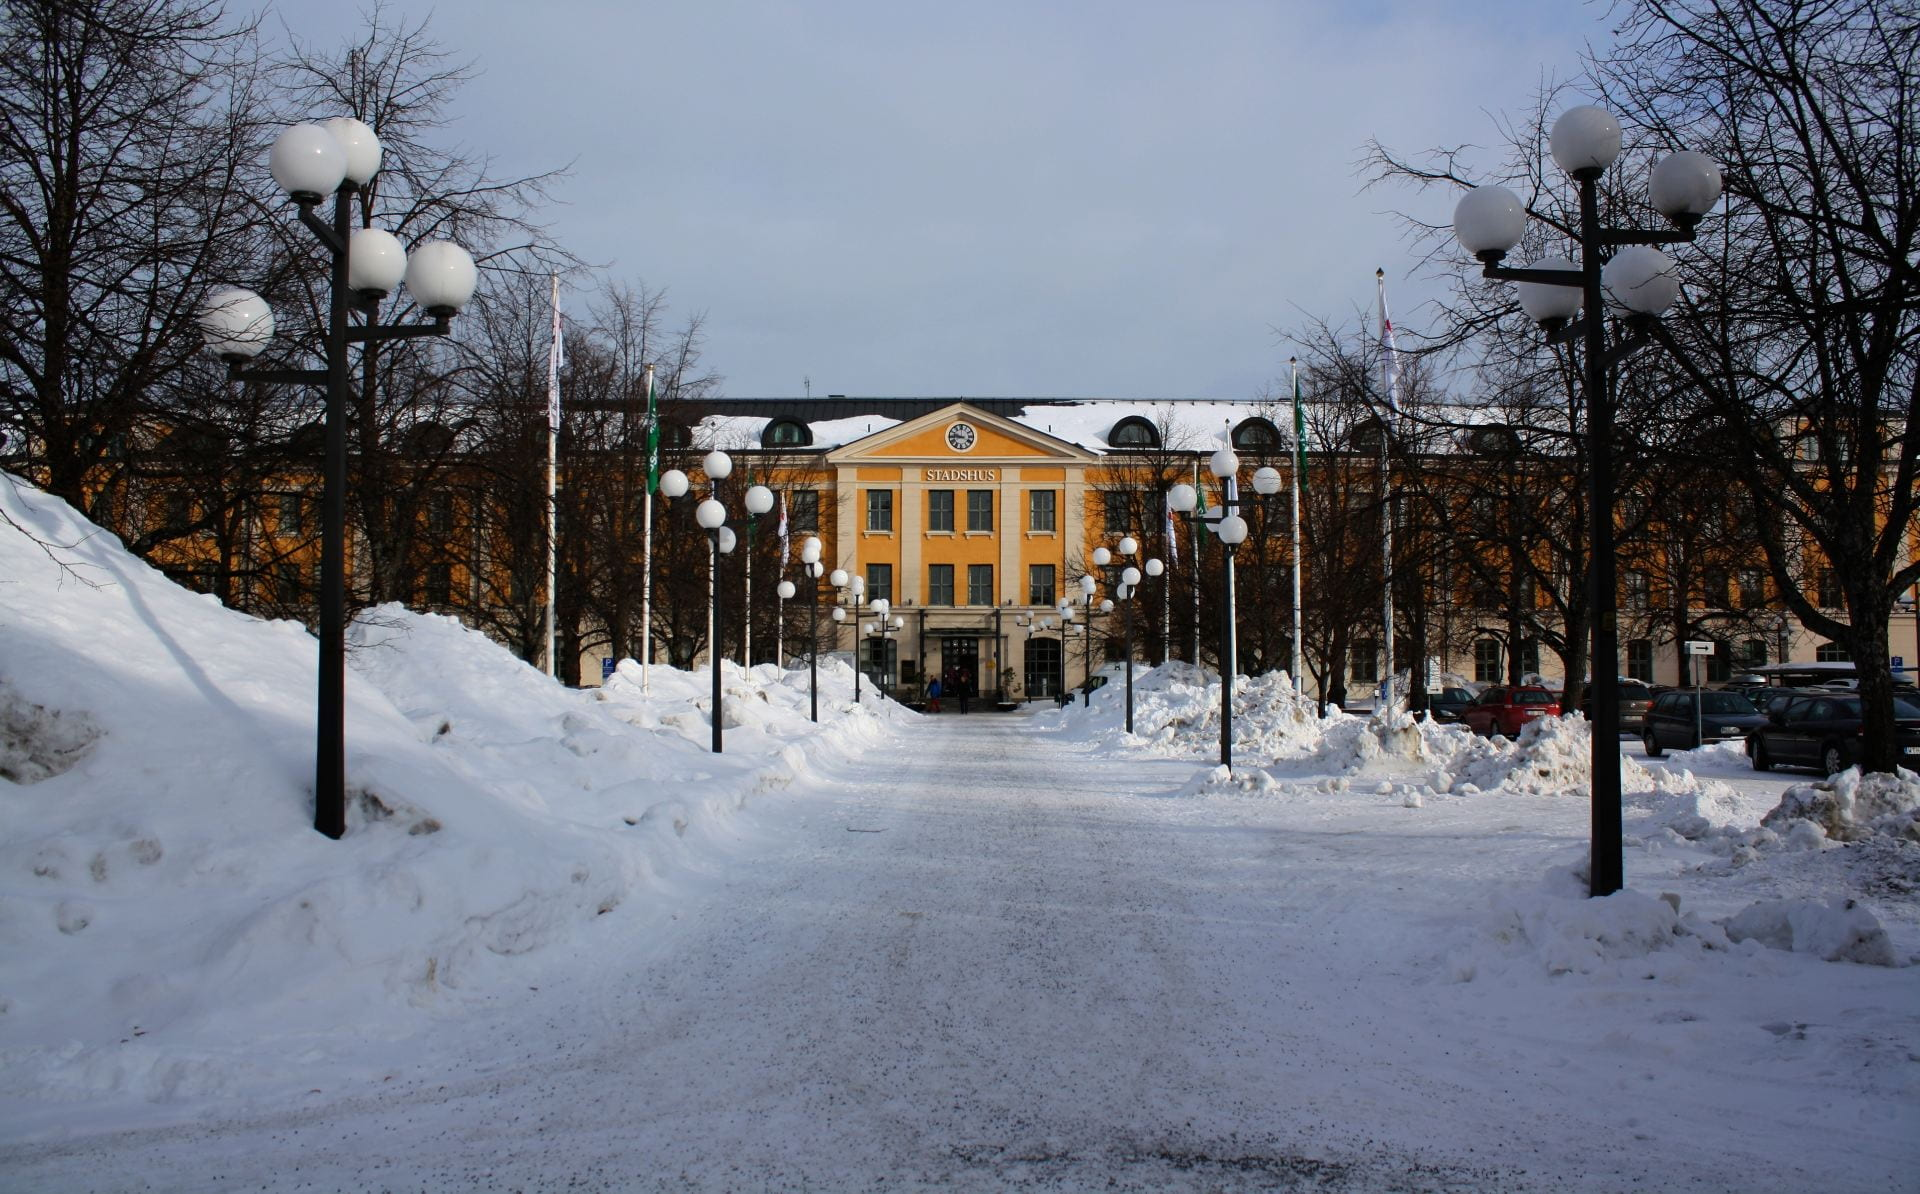 The City Hall in Umeå, Sweden in the snow.